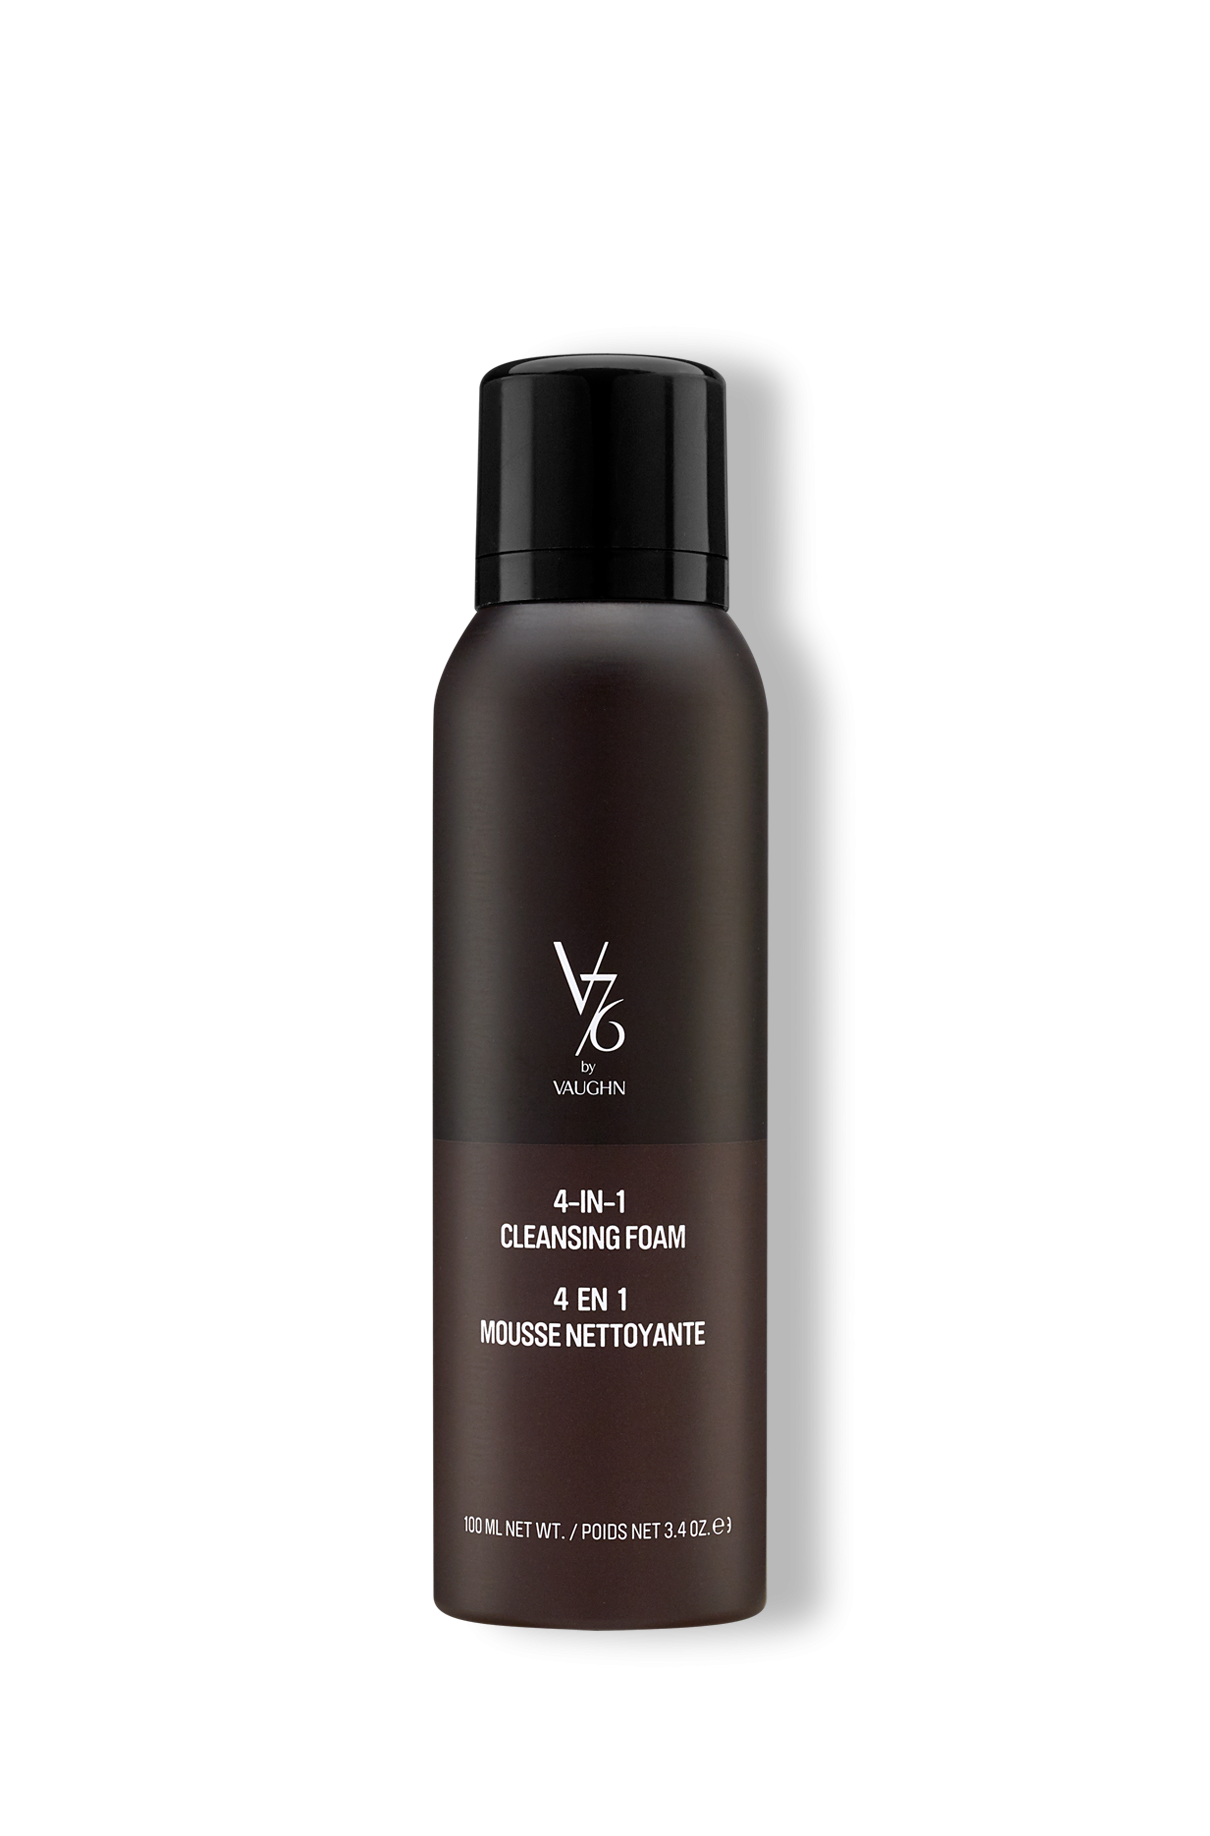 V76 by Vaughn  4-in-1 Cleansing Foam, 3.4 oz. $22.00